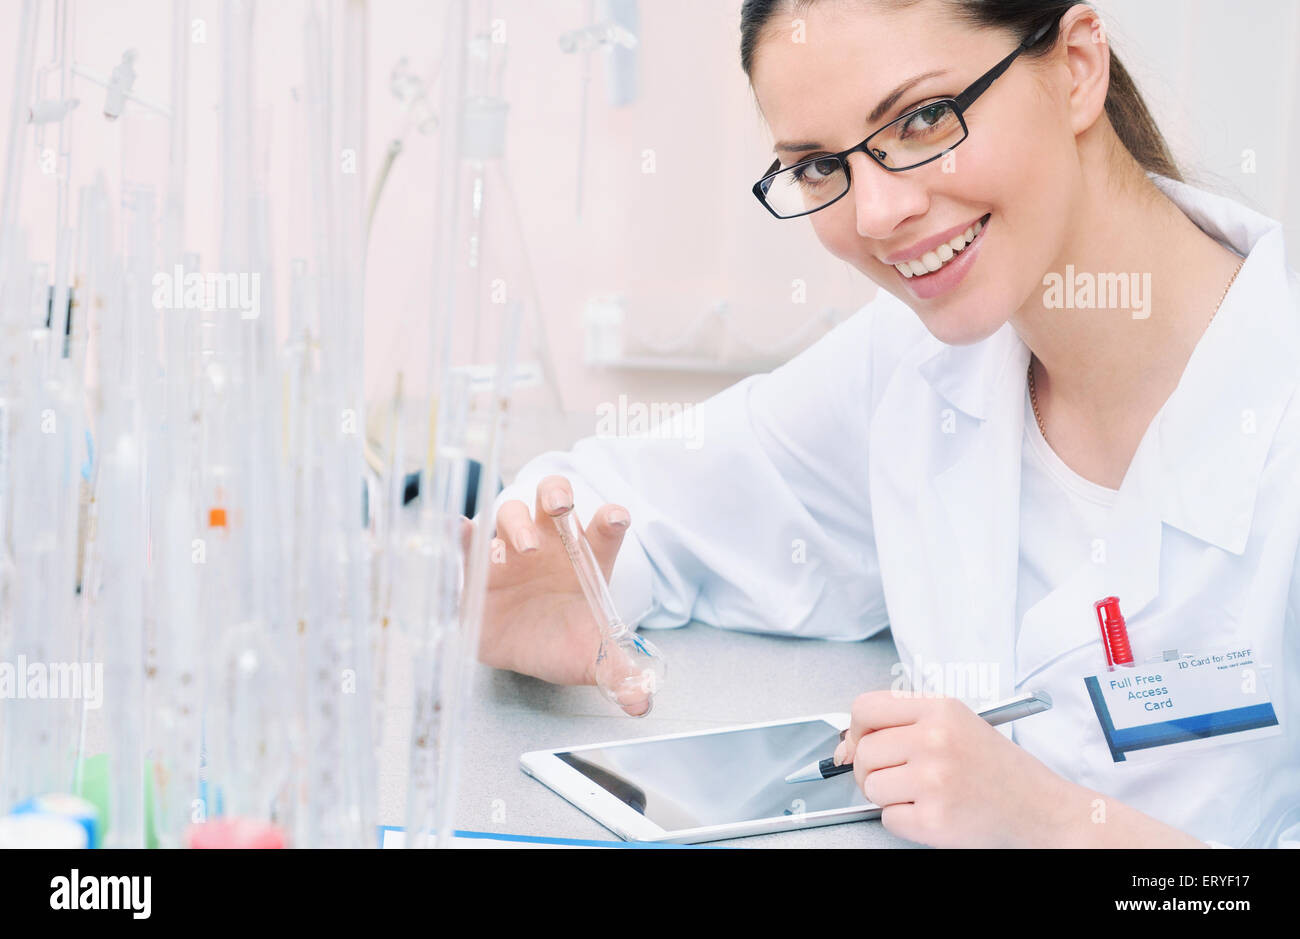 chemical laboratory scene: attractive young student scientist observing liquid measures, medicine concept - Stock Image